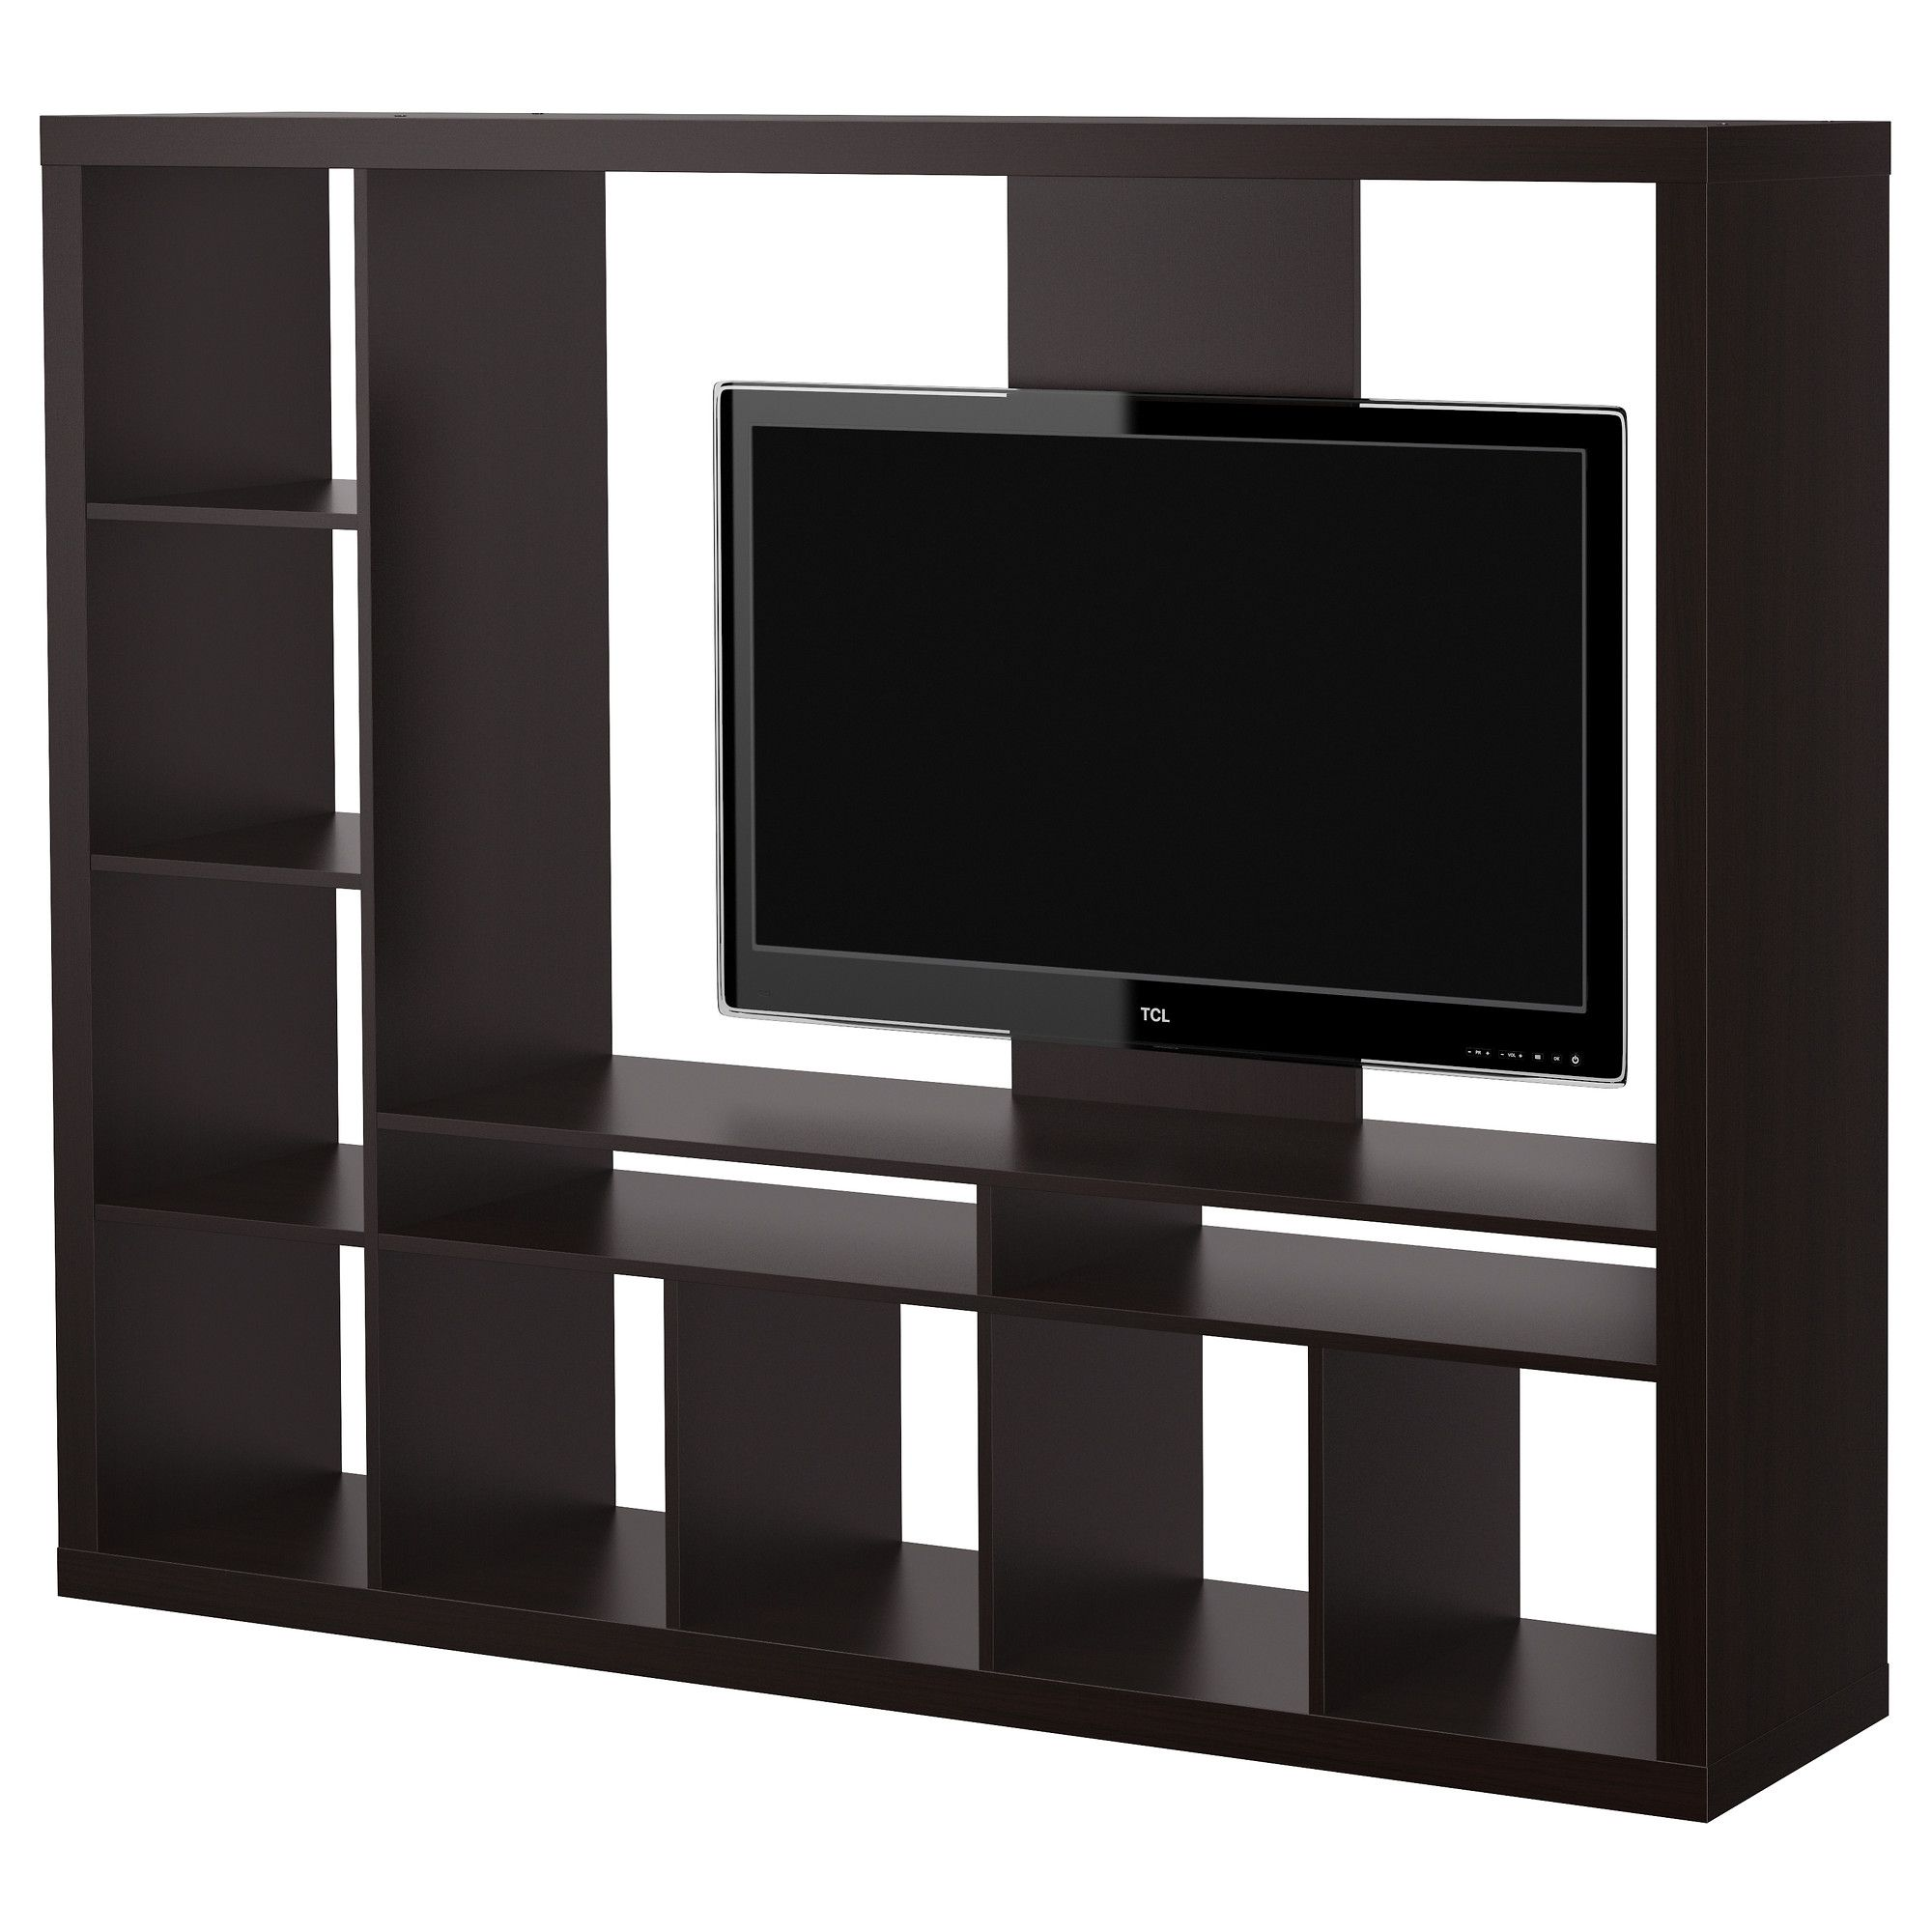 living room storage units black rooms with gray walls and brown furniture expedit tv unit ikea for separating bedroom livingroom